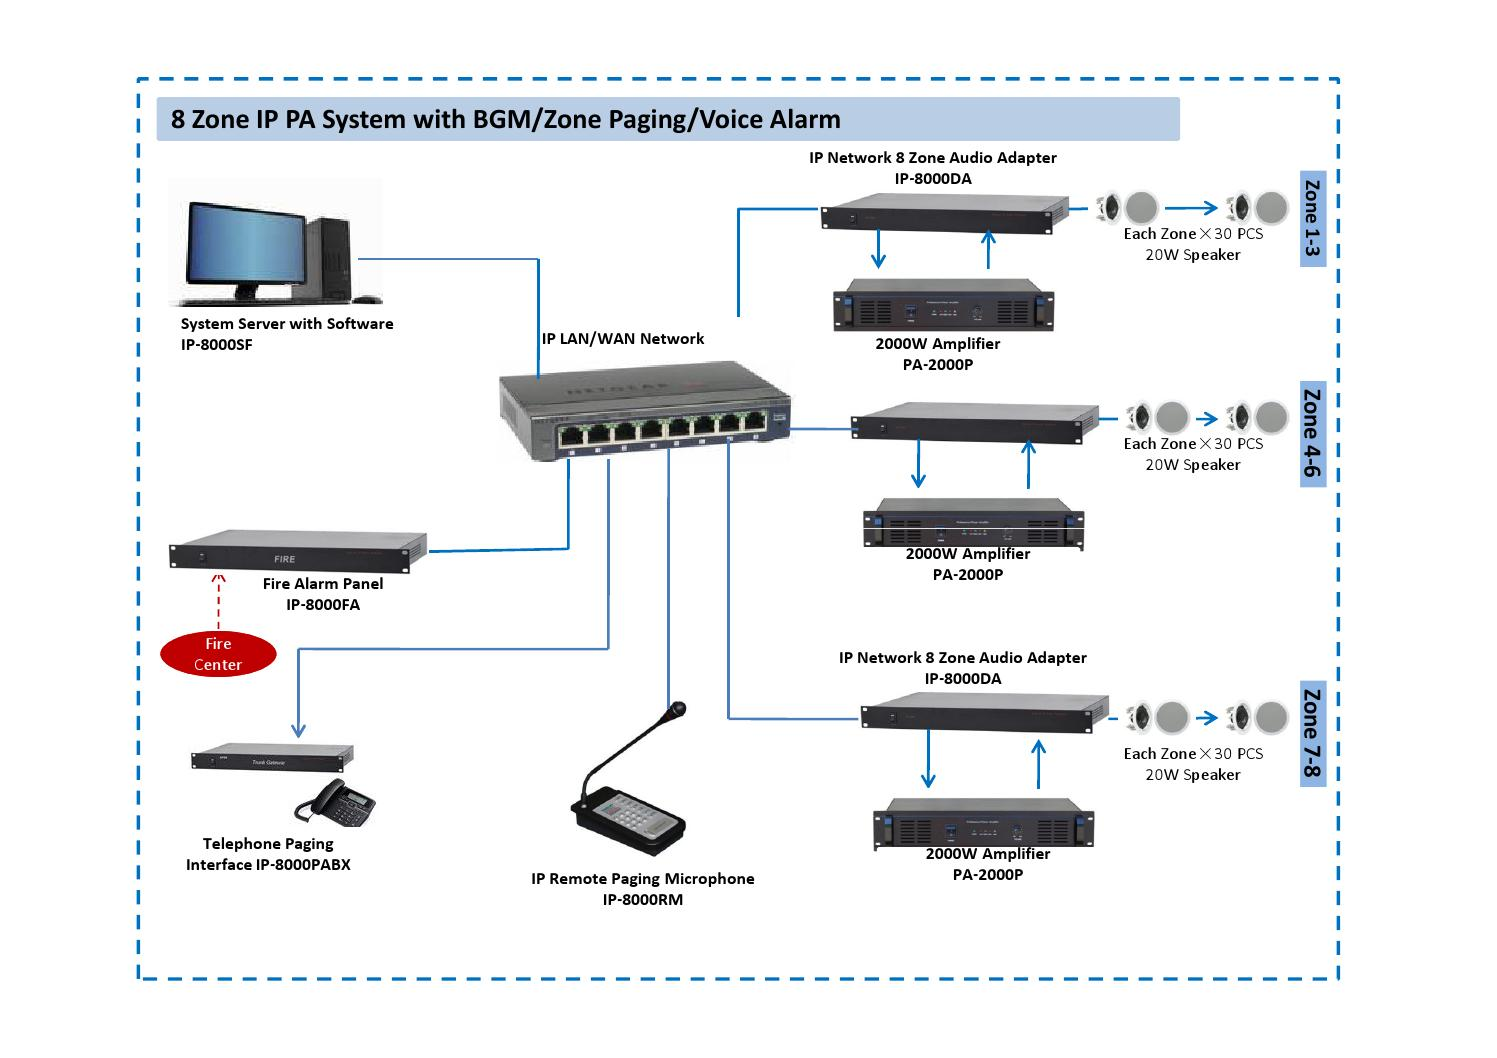 8 zone ip    pa       system    connection    diagram    by RSP Music IvanKorchak  Issuu